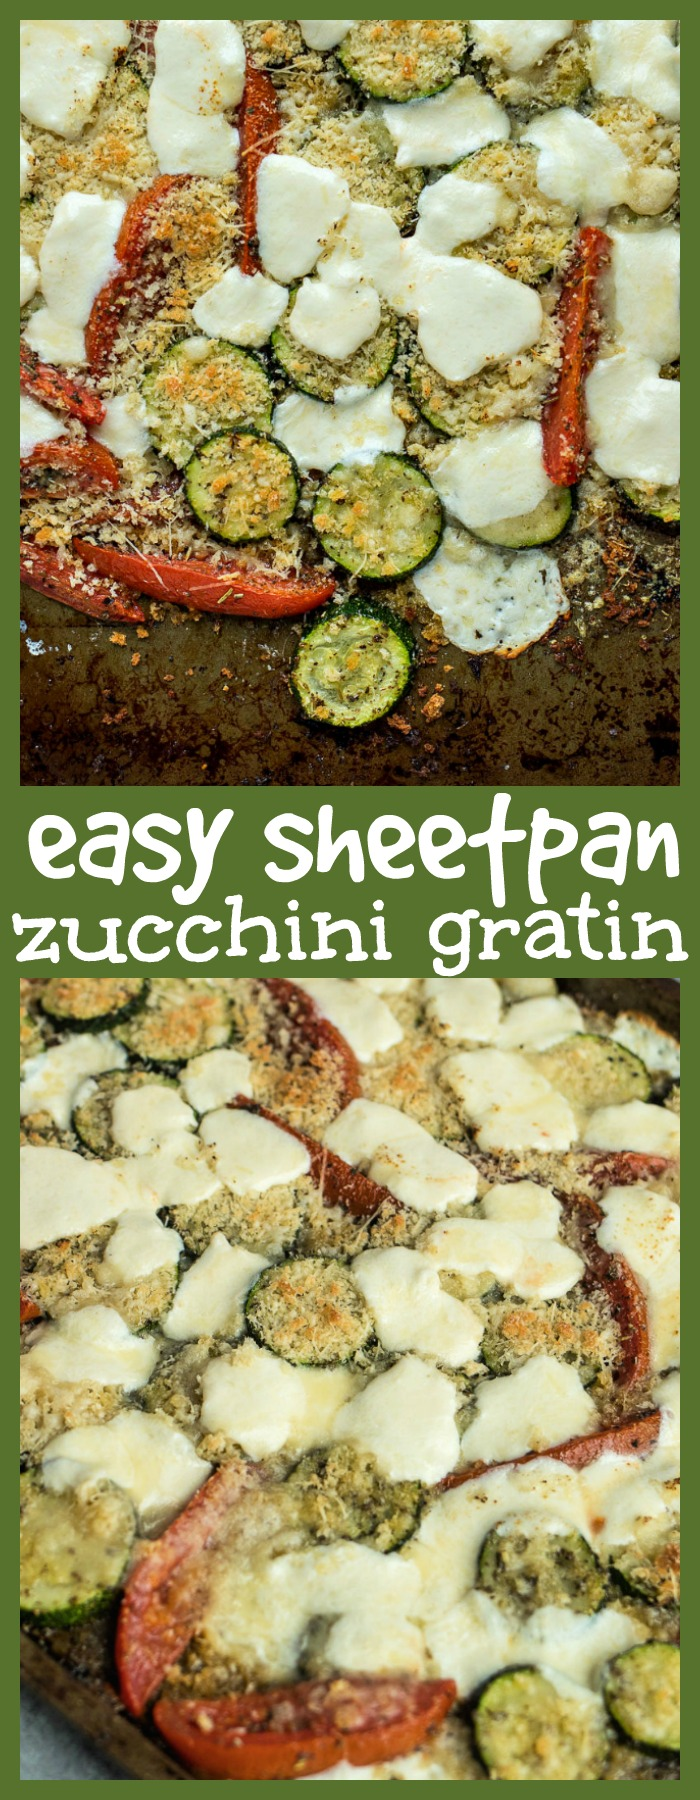 Easy Sheet-pan Zucchini Gratin photo collage